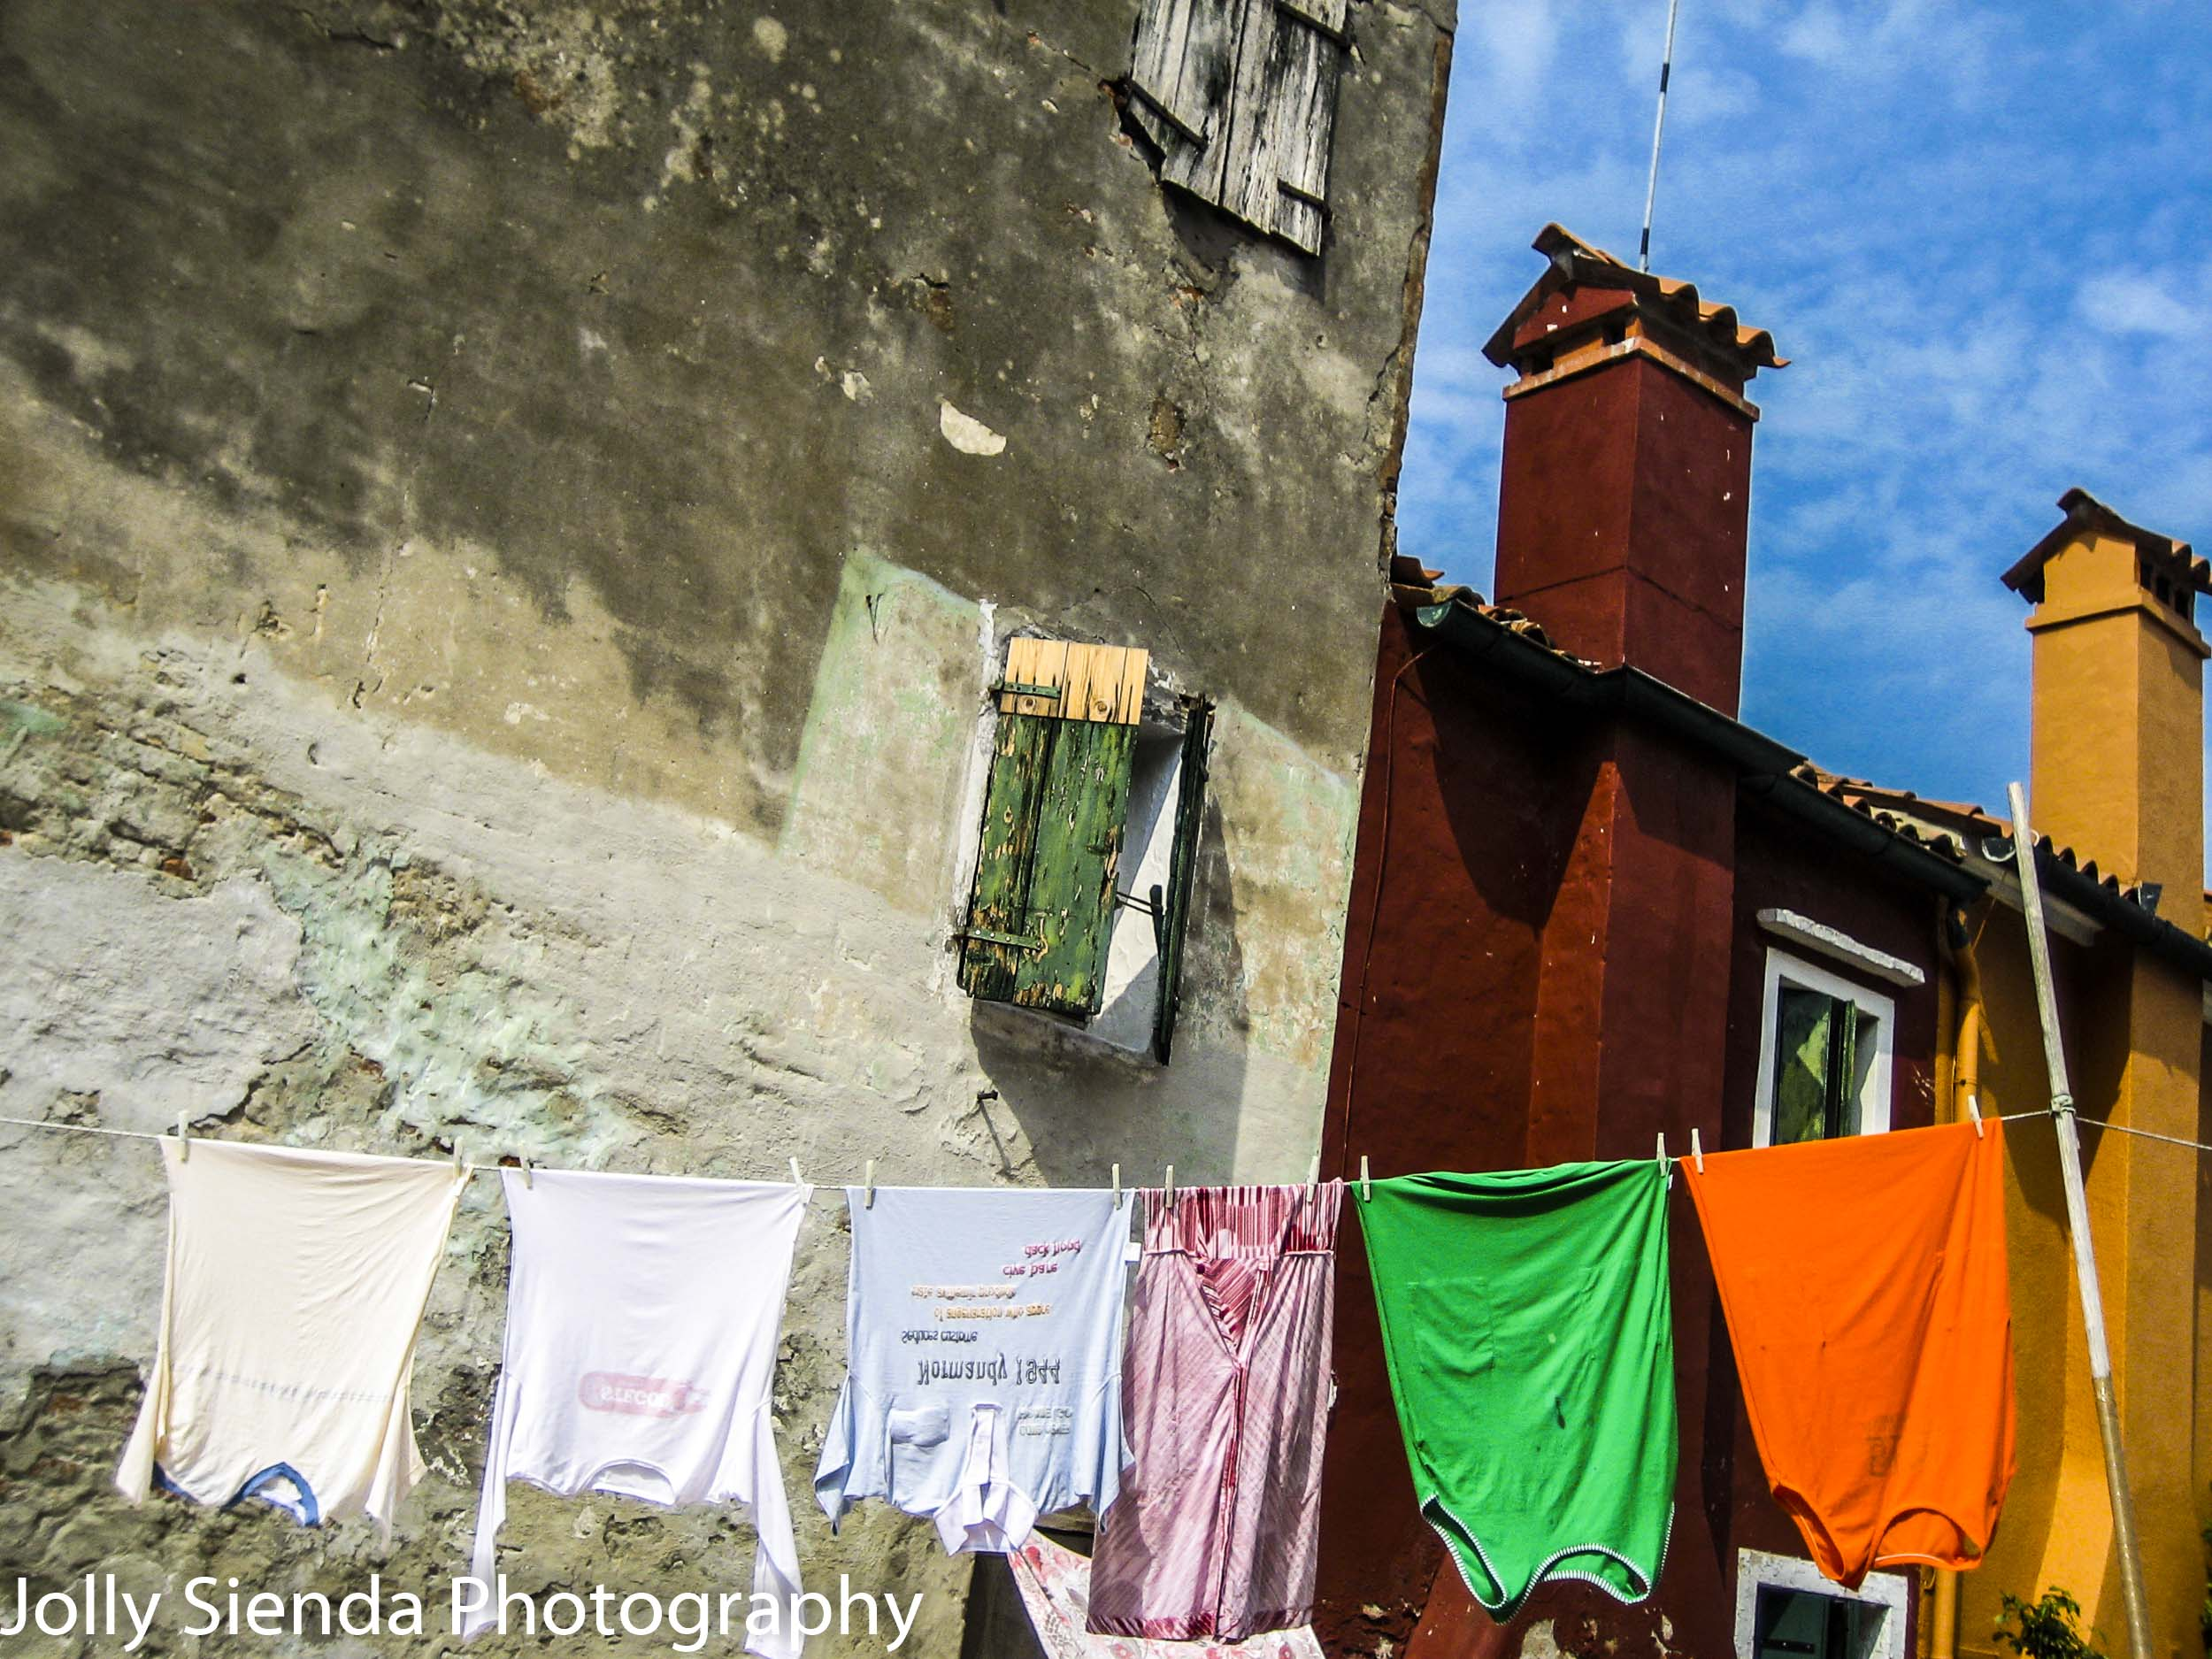 Laundry Hangs on a Clothes Line between Painted Buildings